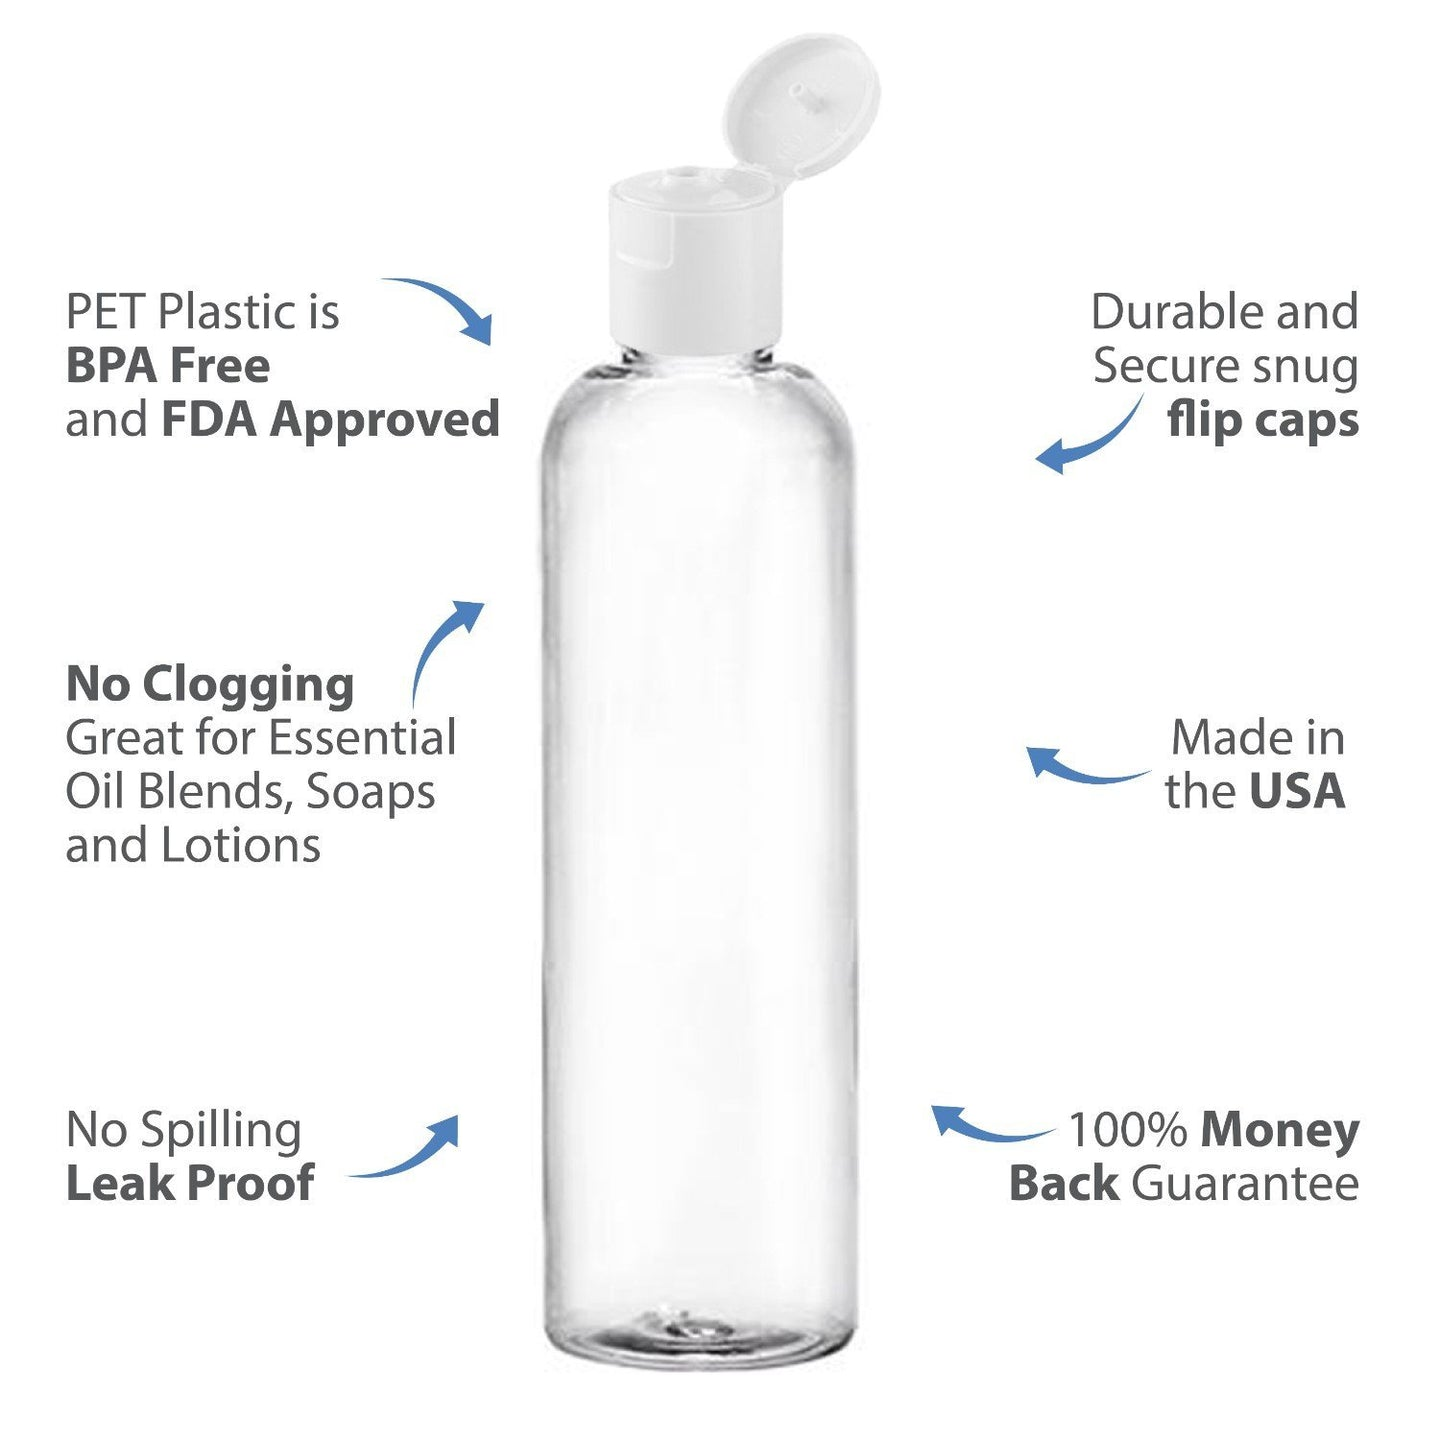 MoYo Natural Labs 8 oz Travel Bottles, Empty Travel Containers with Flip Caps, BPA Free PET Plastic Squeezable Toiletry/Cosmetic Bottles (6 pack, Clear)